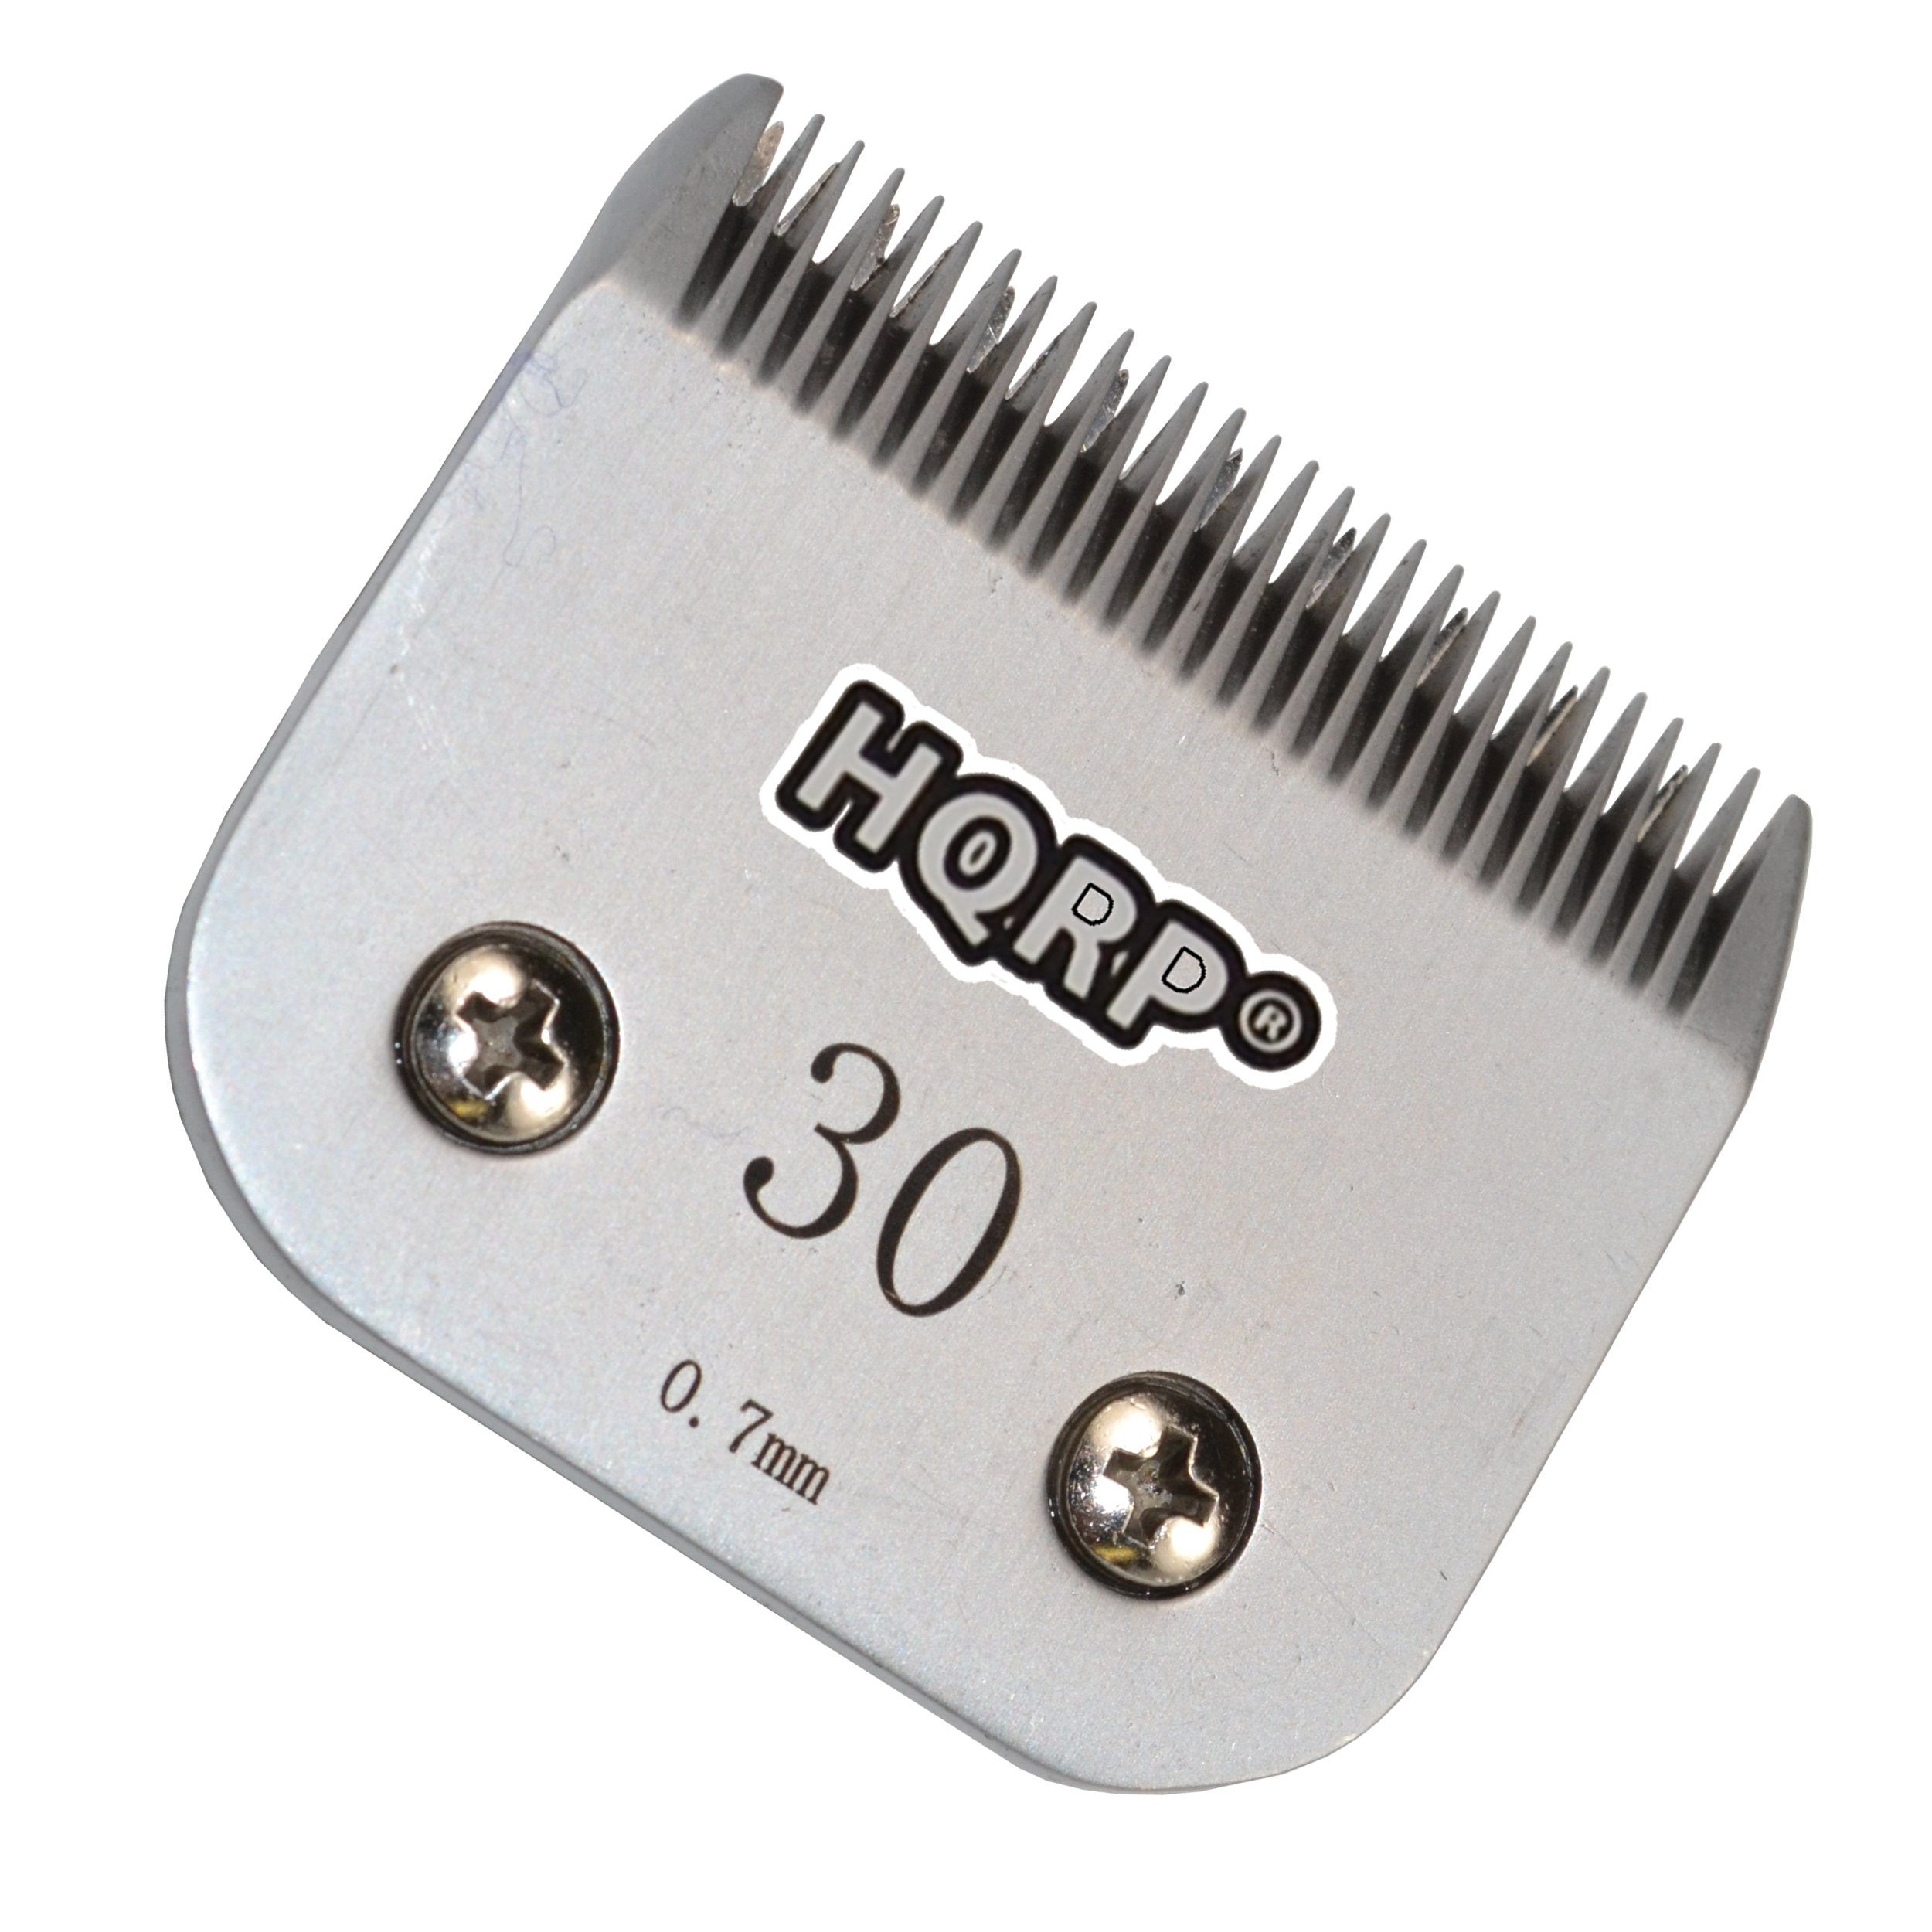 HQRP Animal Clipper Blade for Oster Size-30 CryogenX Professional 078919-026-005 Pet Grooming Coaster